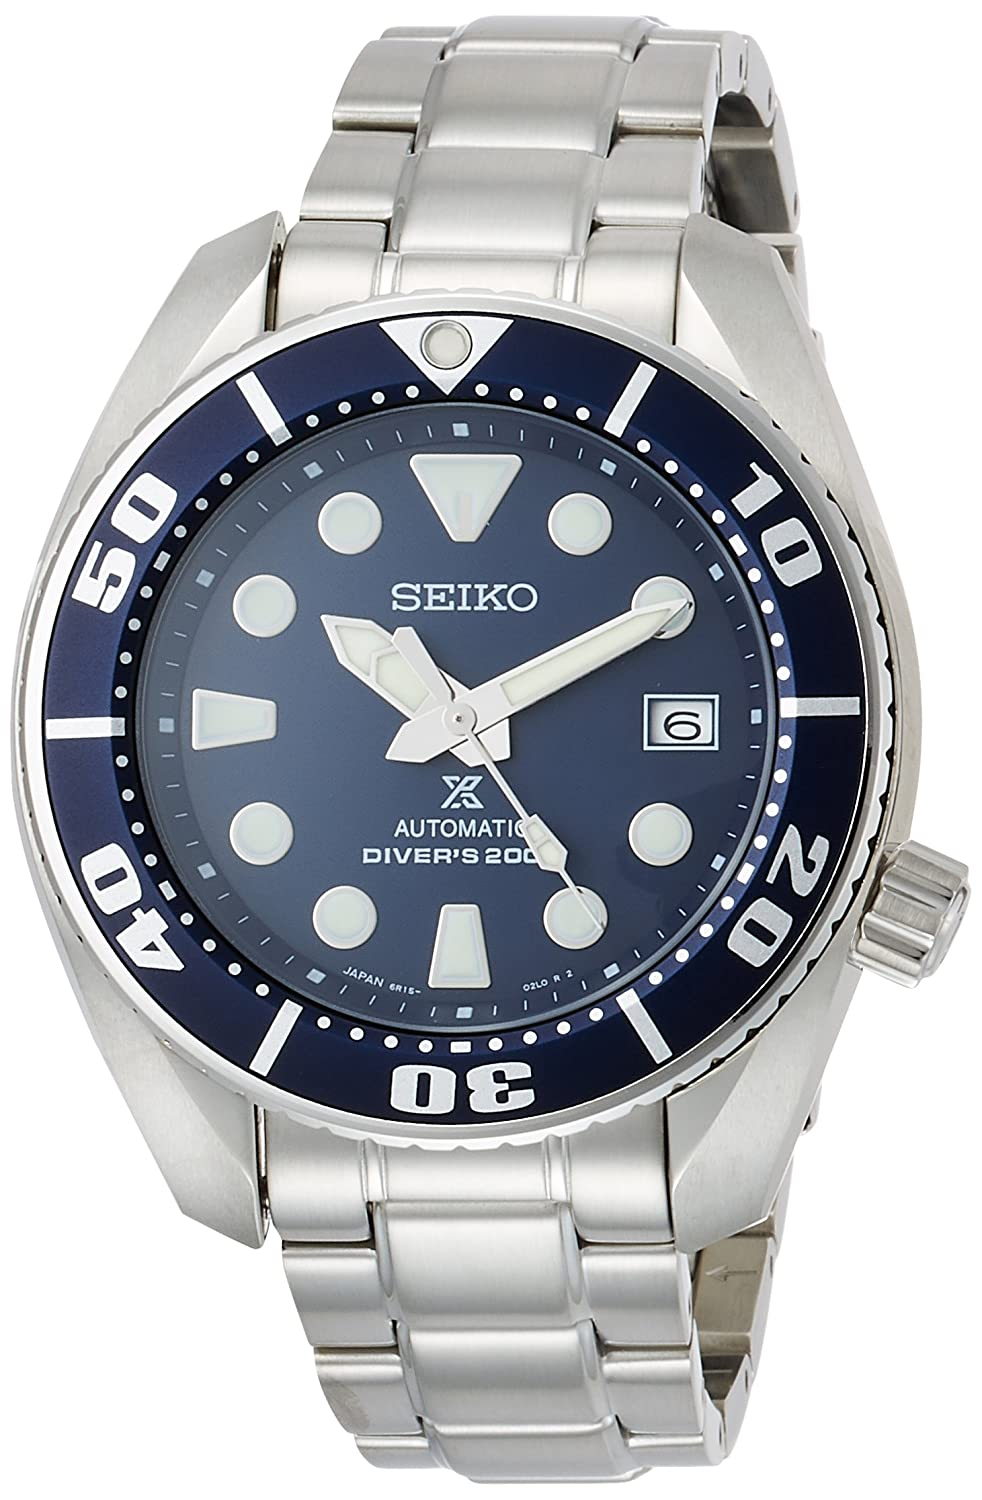 SEIKO PROSPEX Men's Watch Diver Mechanical self-winding (with manual winding) Waterproof 200m Hard Rex SBDC033